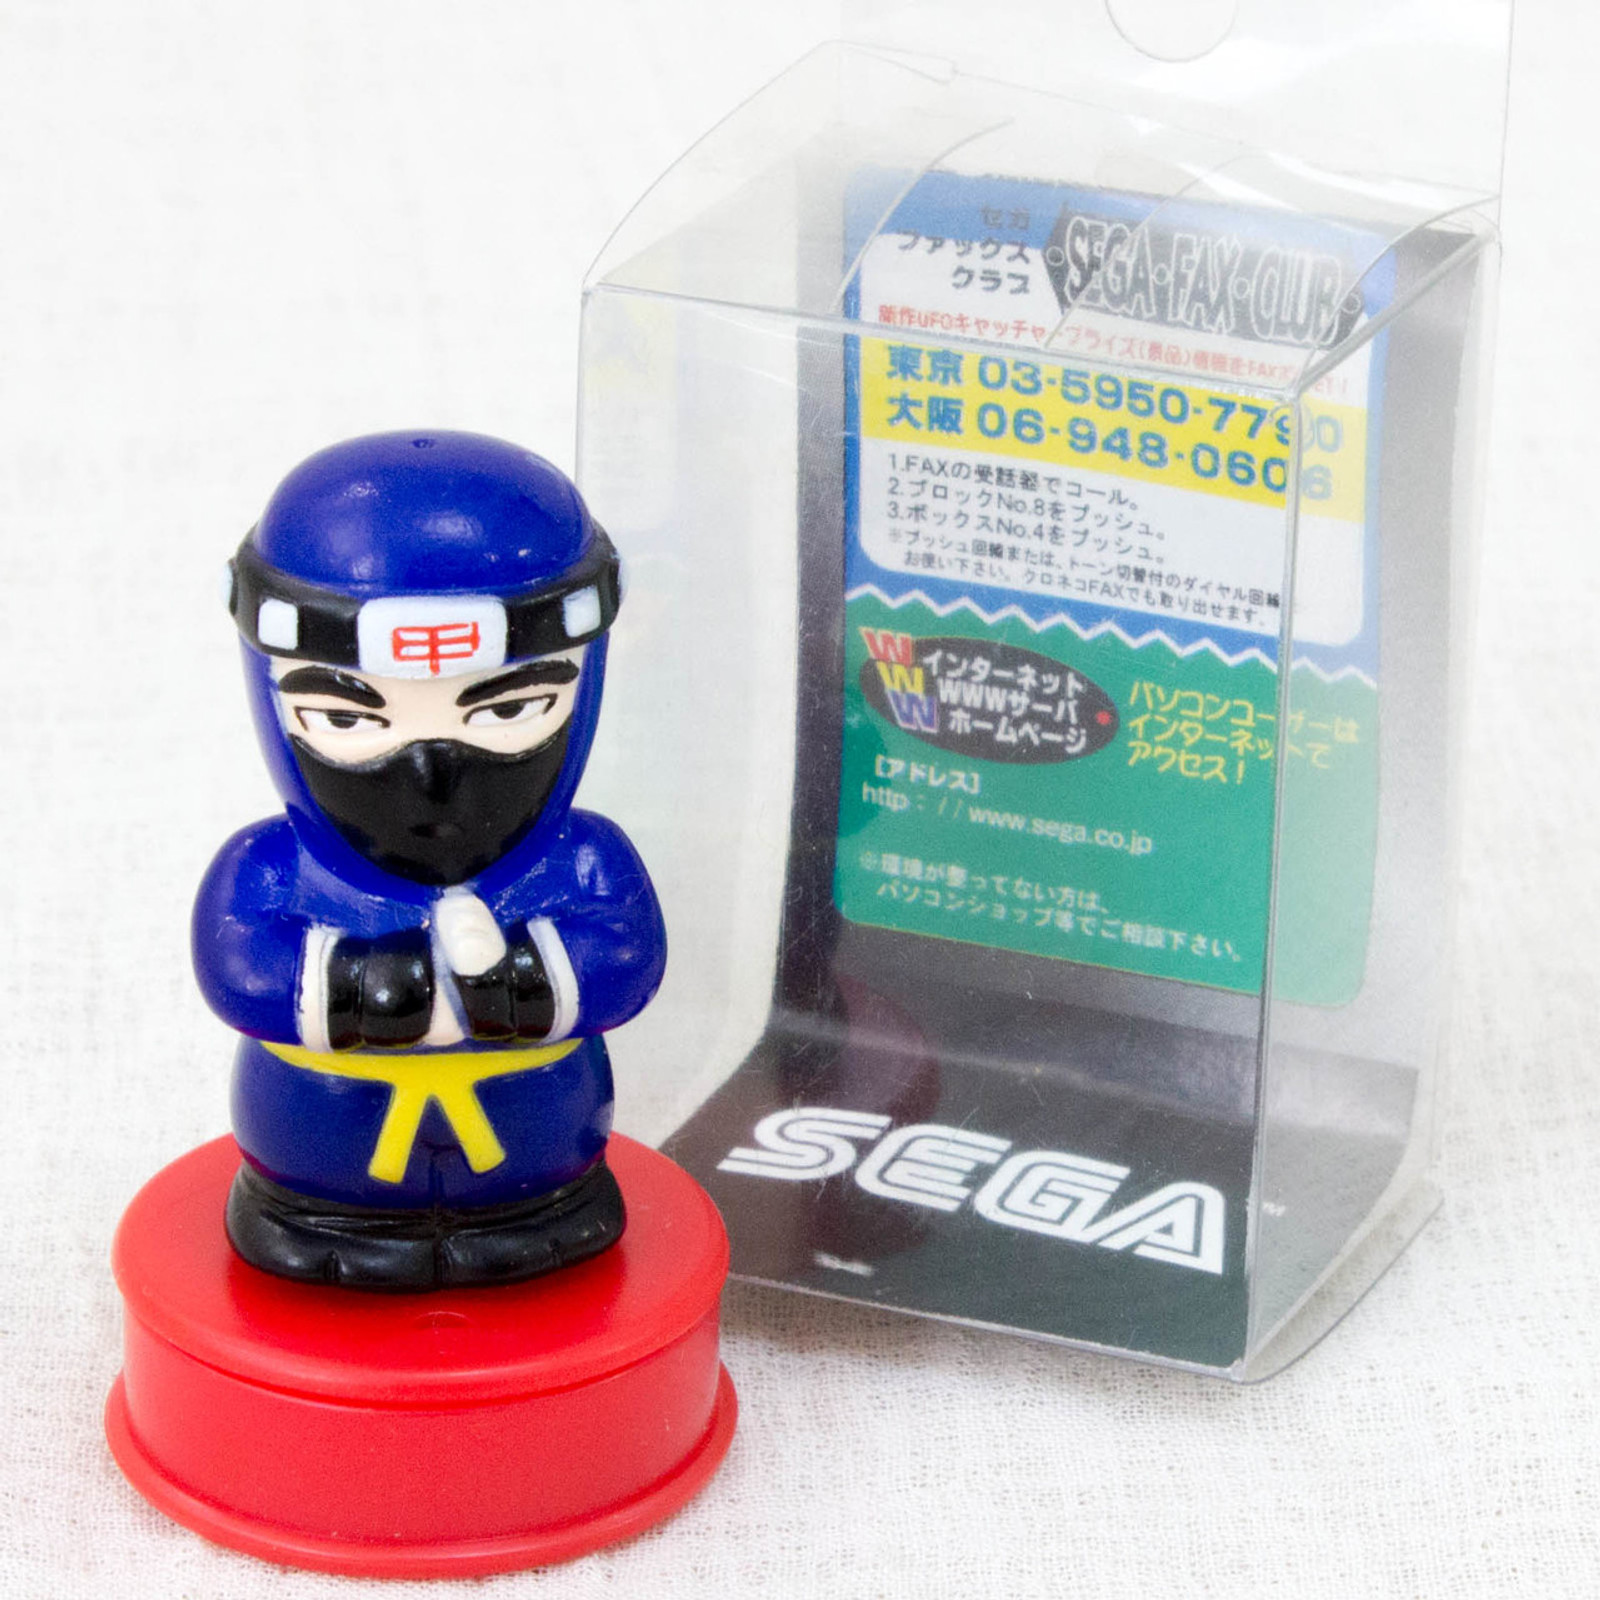 Virtua Fighter 2 Kagemaru Mascot Stamp SEGA 1994 JAPAN GAME FIGURE